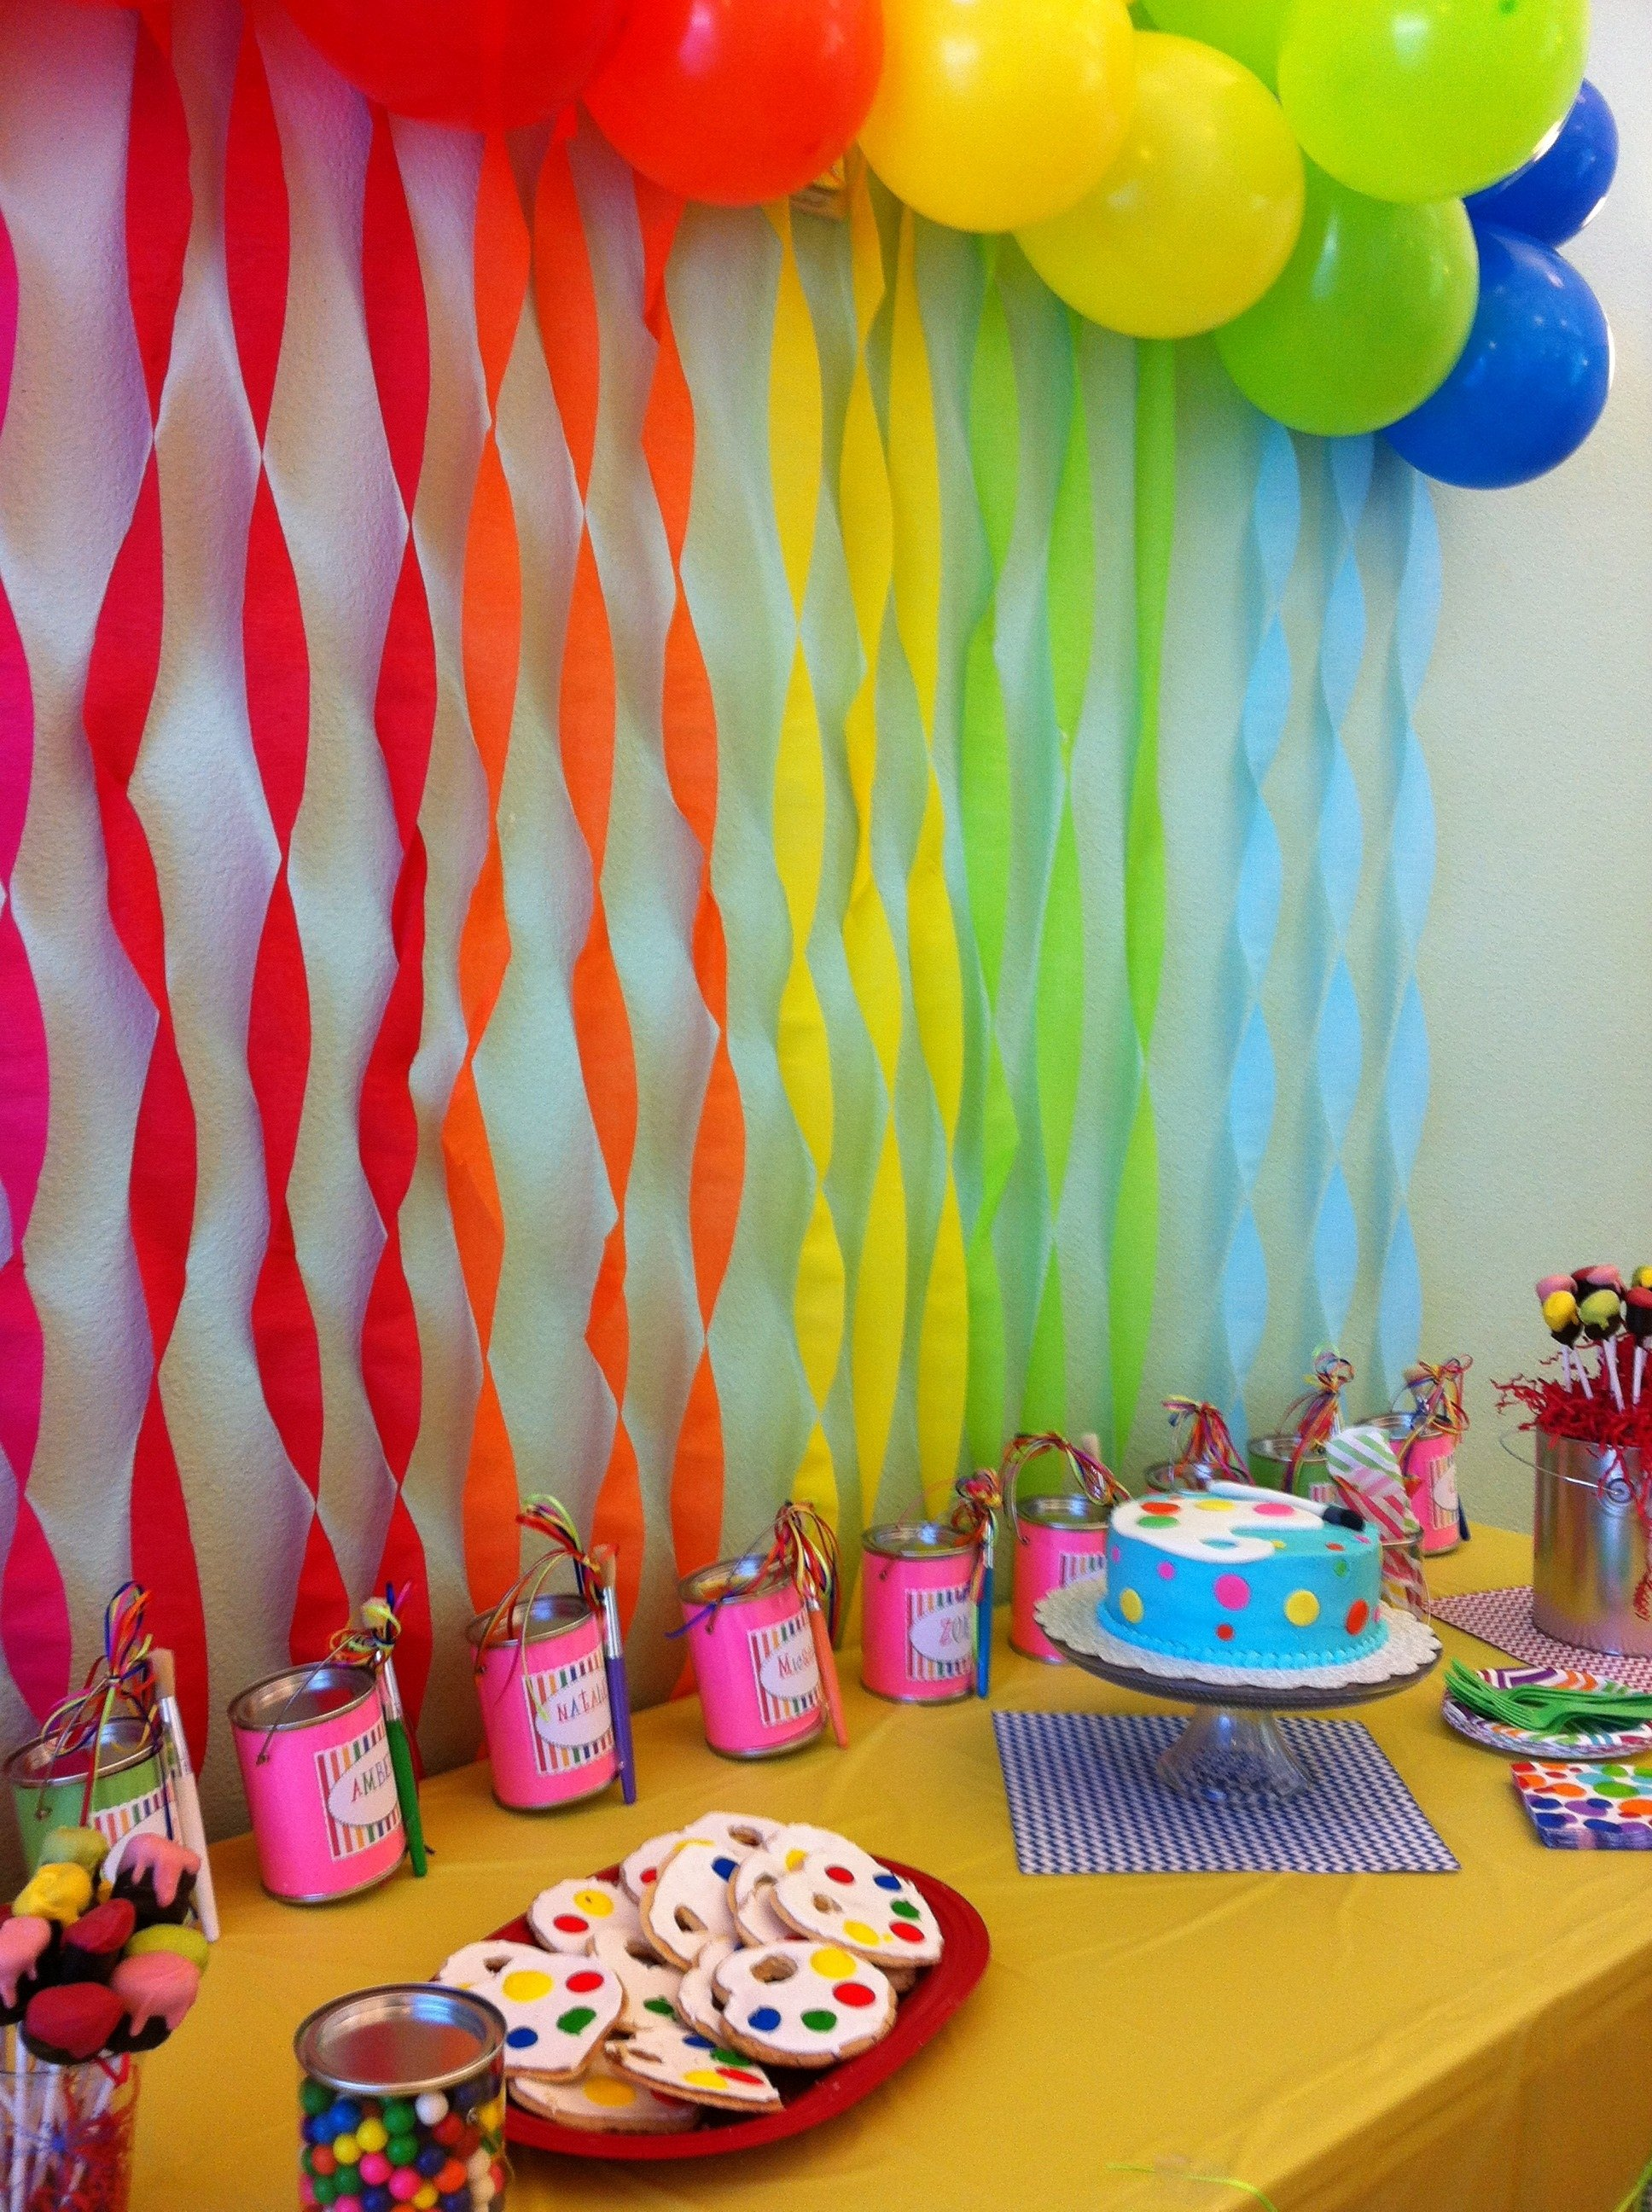 10 Fabulous Birthday Party Ideas For 8 Year Old Boy craft ideas for 8 year old boy birthday party birthday cakes 1 2021